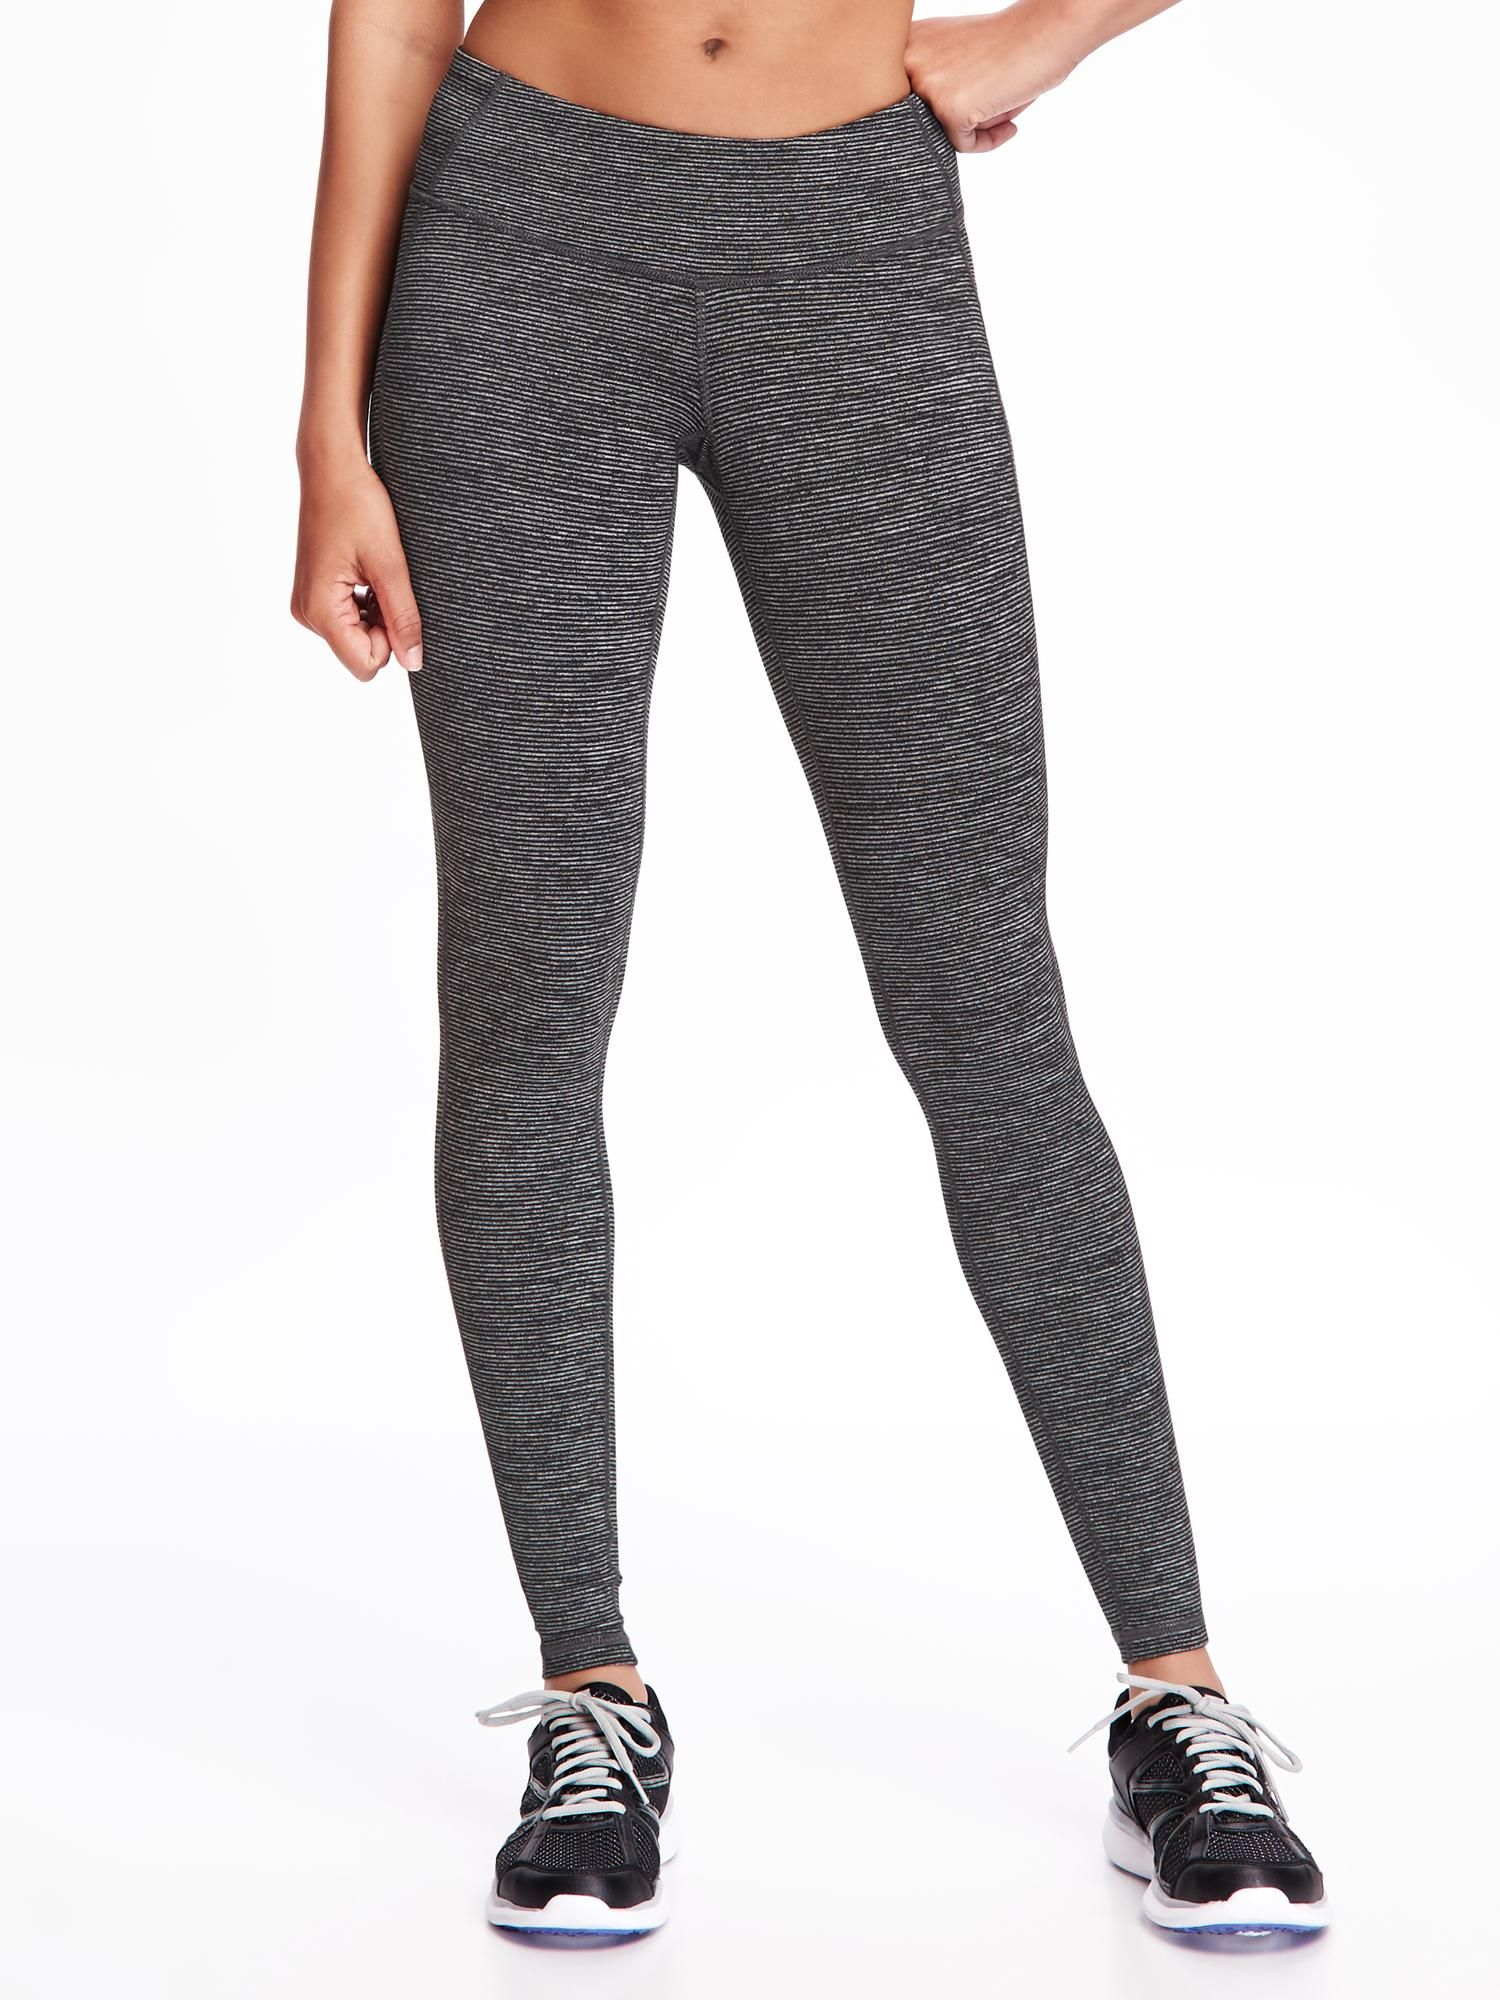 d2f1eac6af Go-Dry Mid-Rise Textured-Print Compression Tights for Women Old Navy |  S.T.Y.L.E. | Leggings, Leggings are not pants, Old navy leggings